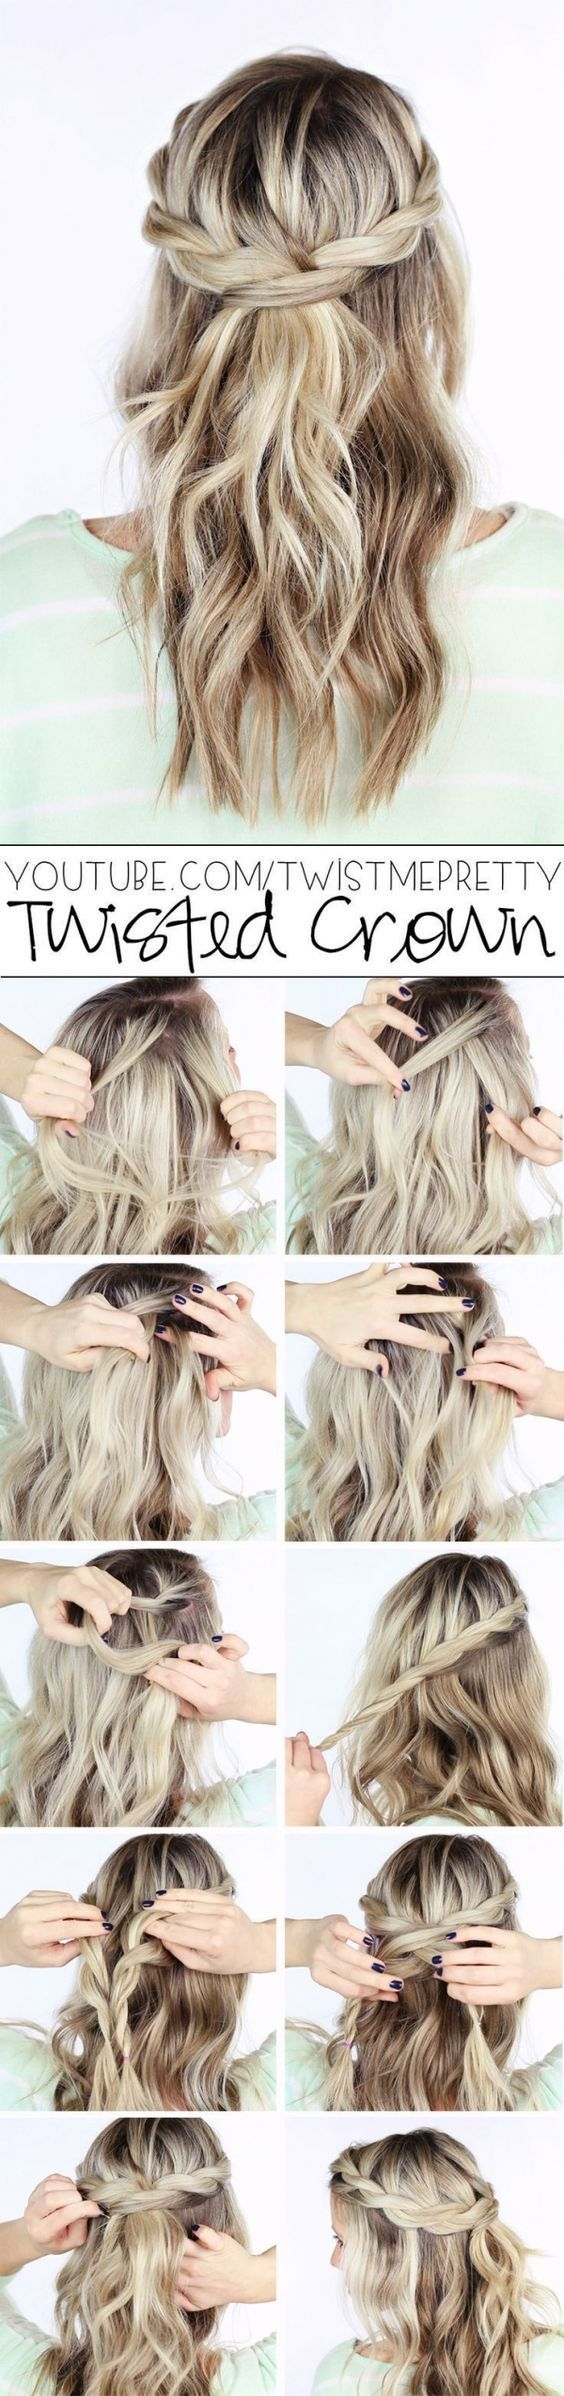 Fabulous Half Up Half Down Hairstyles: